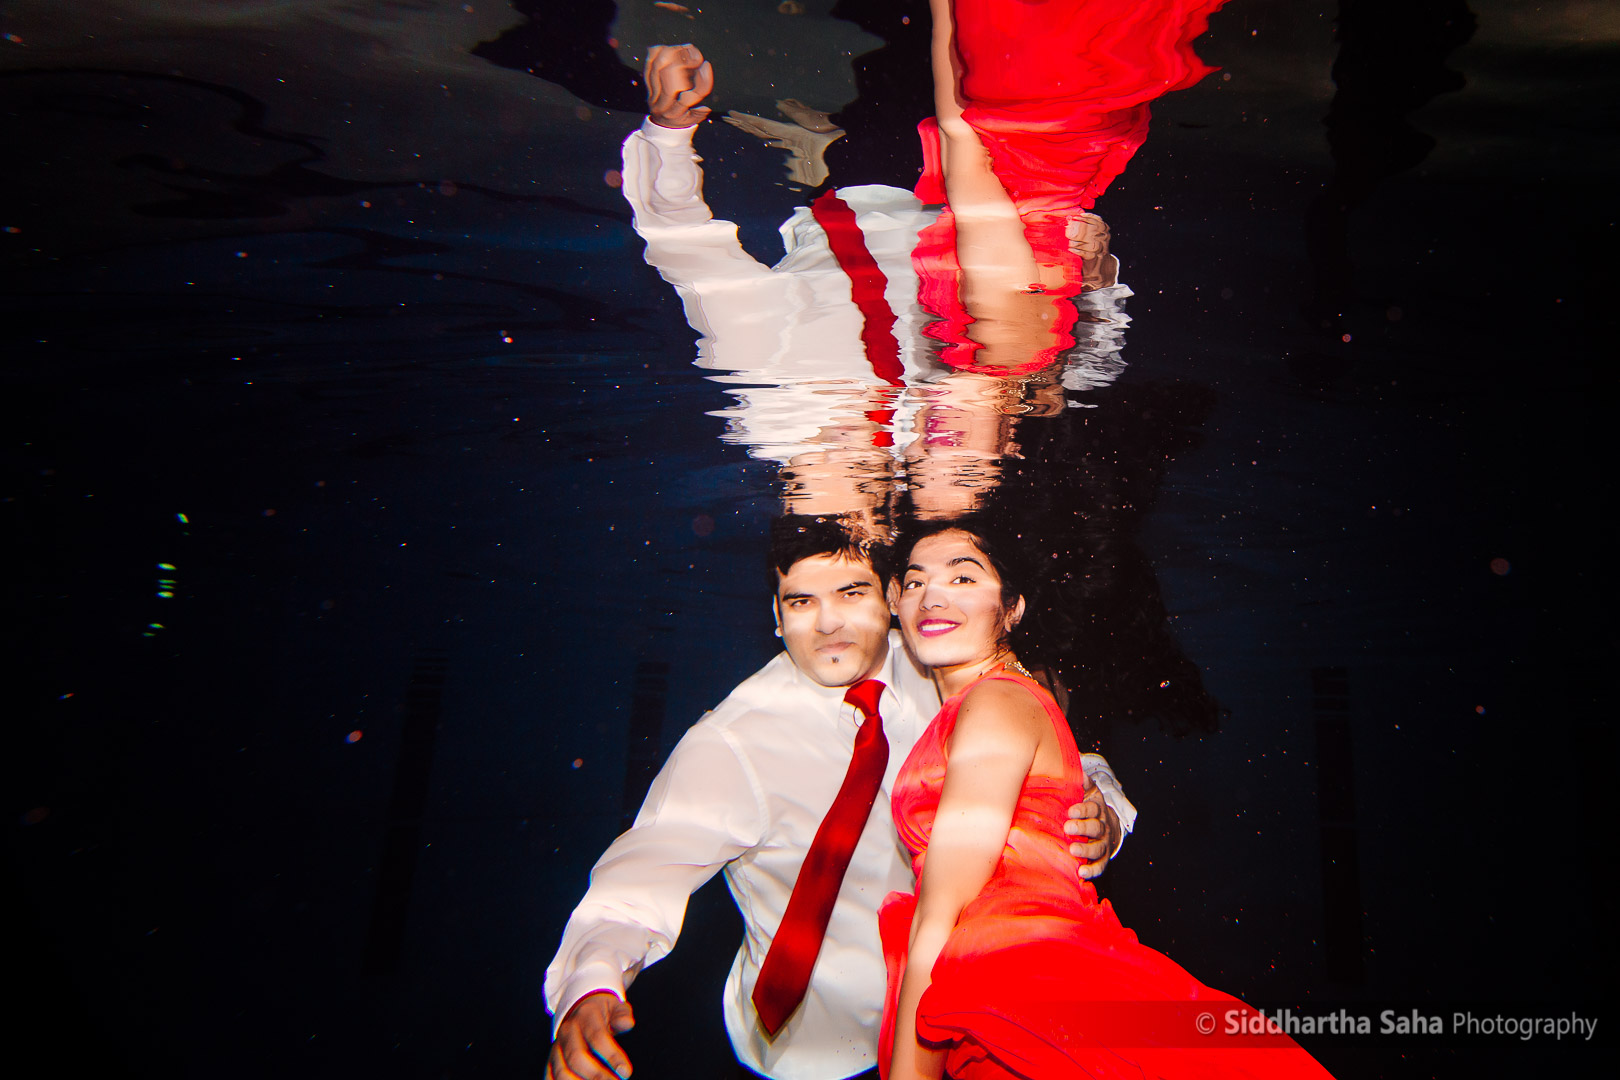 2015-04-12 - Saloni Vaibhav Underwater Shoot - _O5C4286-01